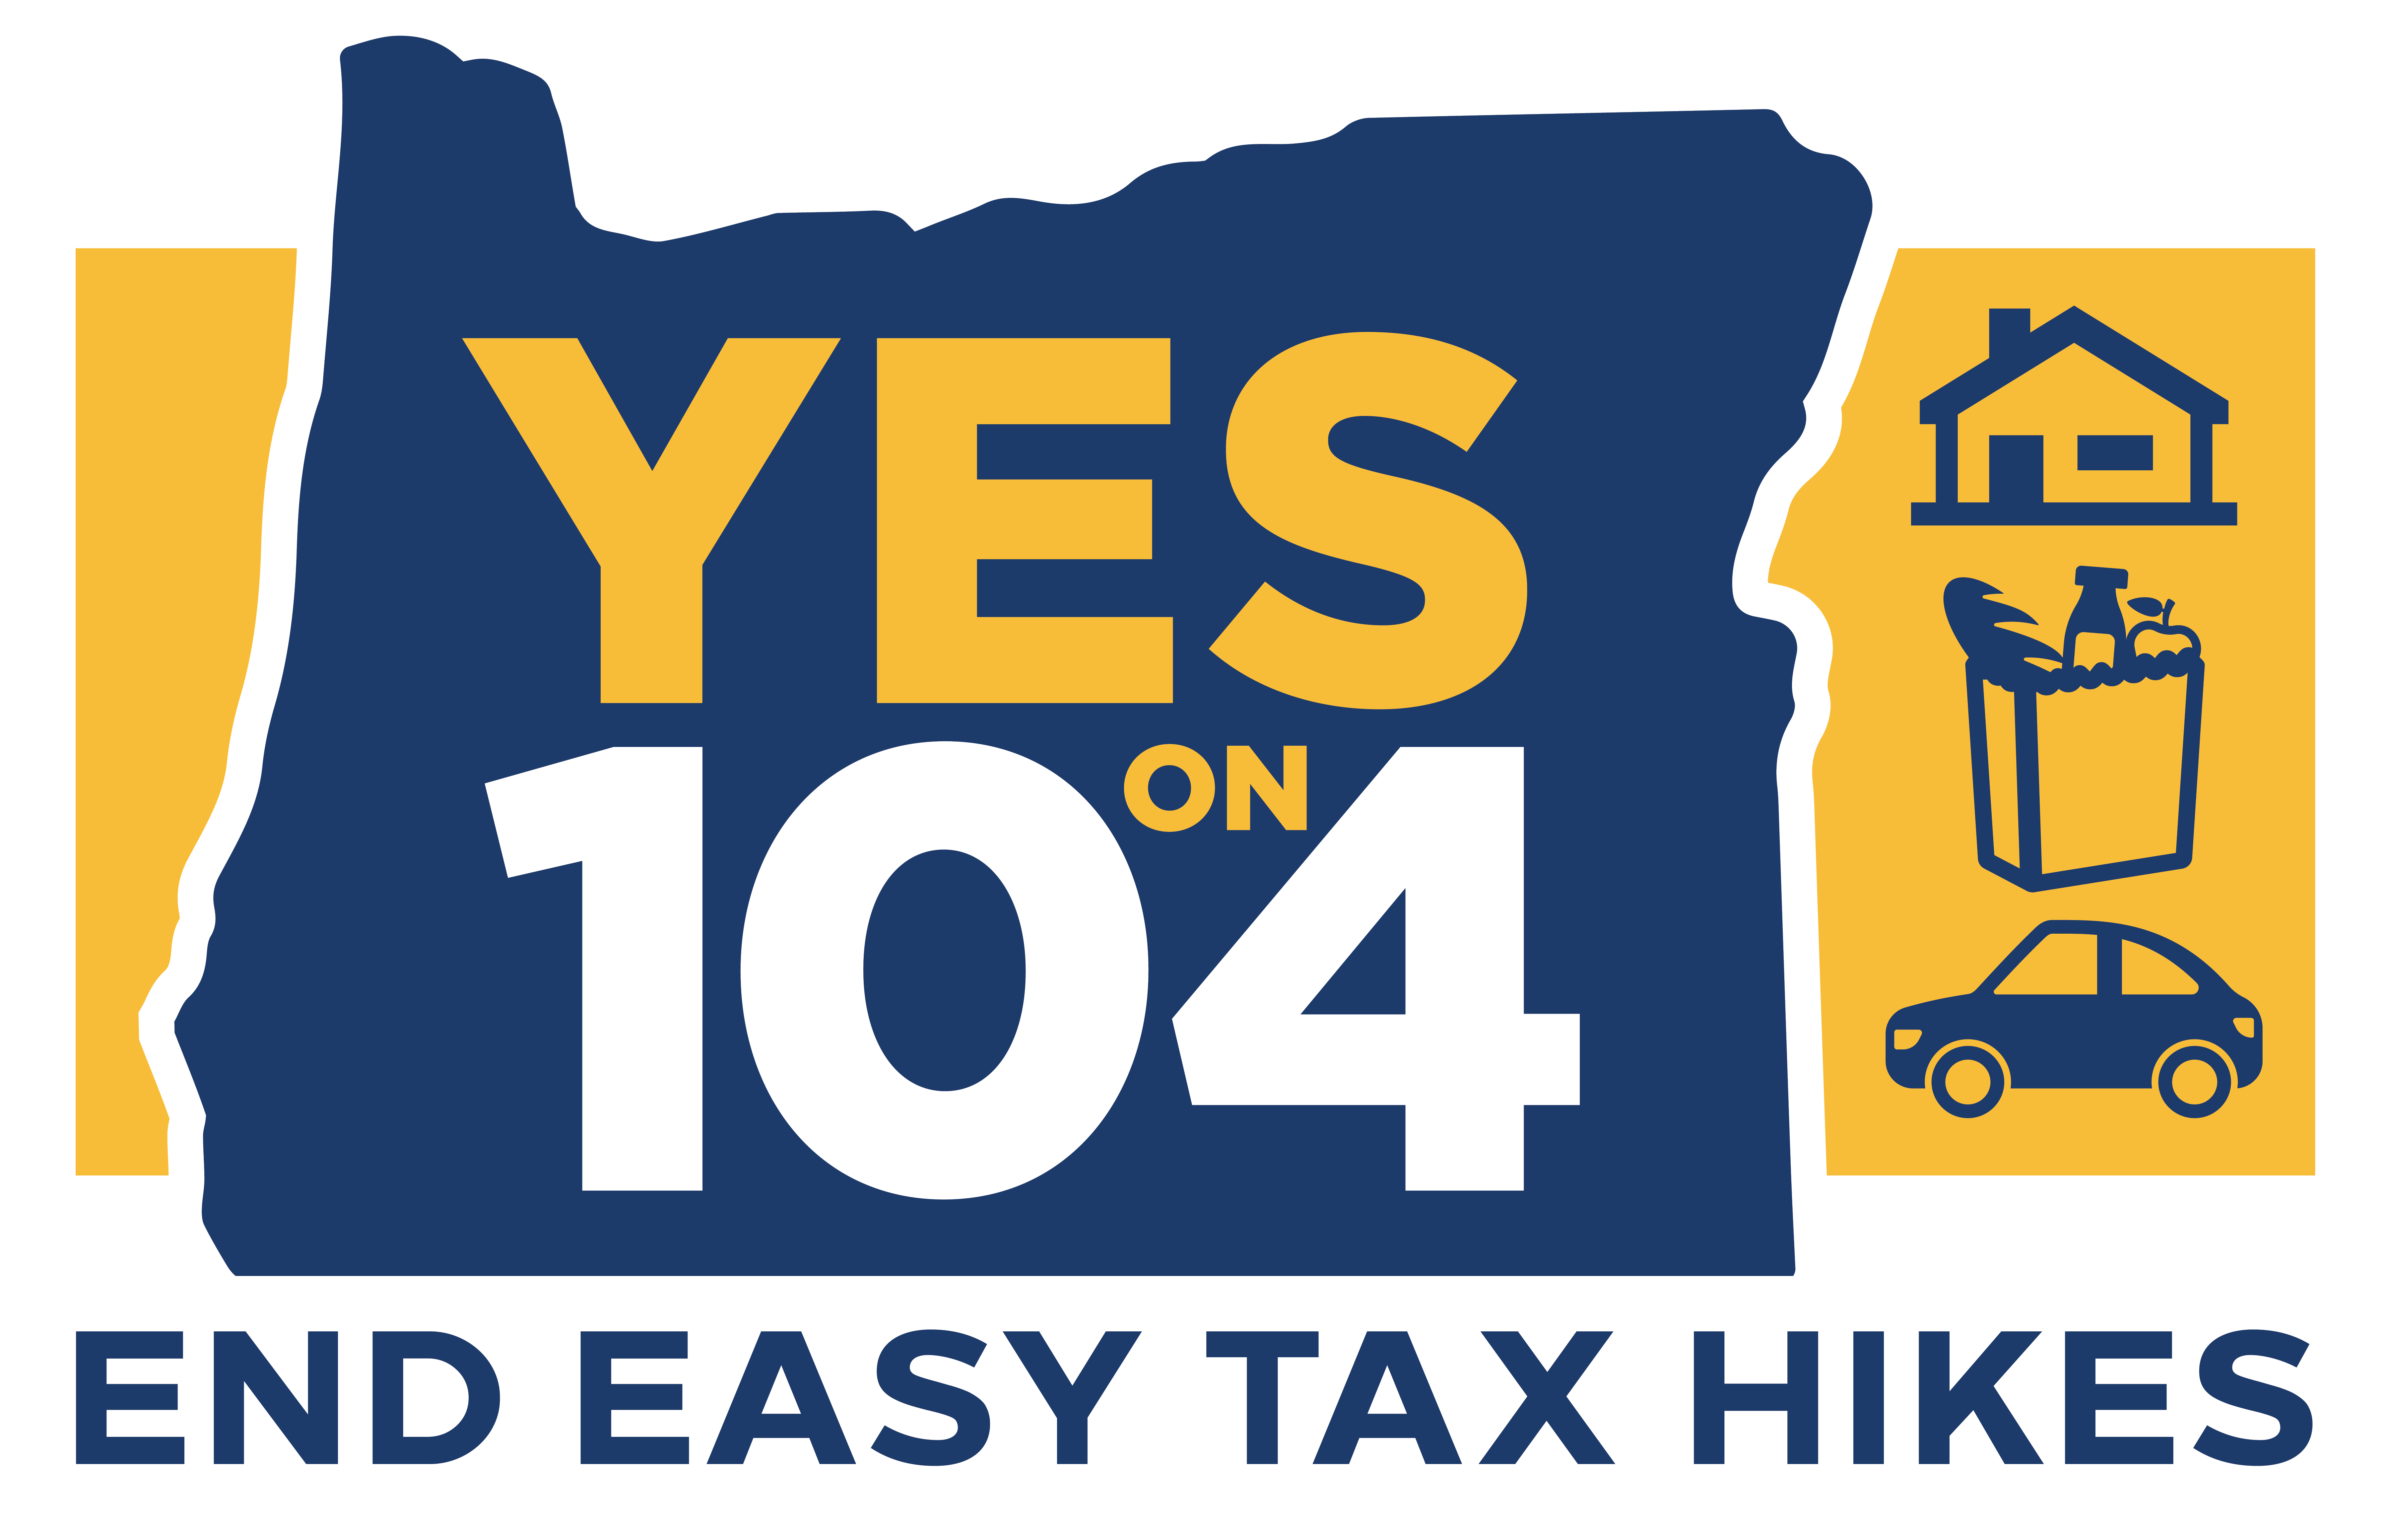 Help end easy tax hikes, suppo...